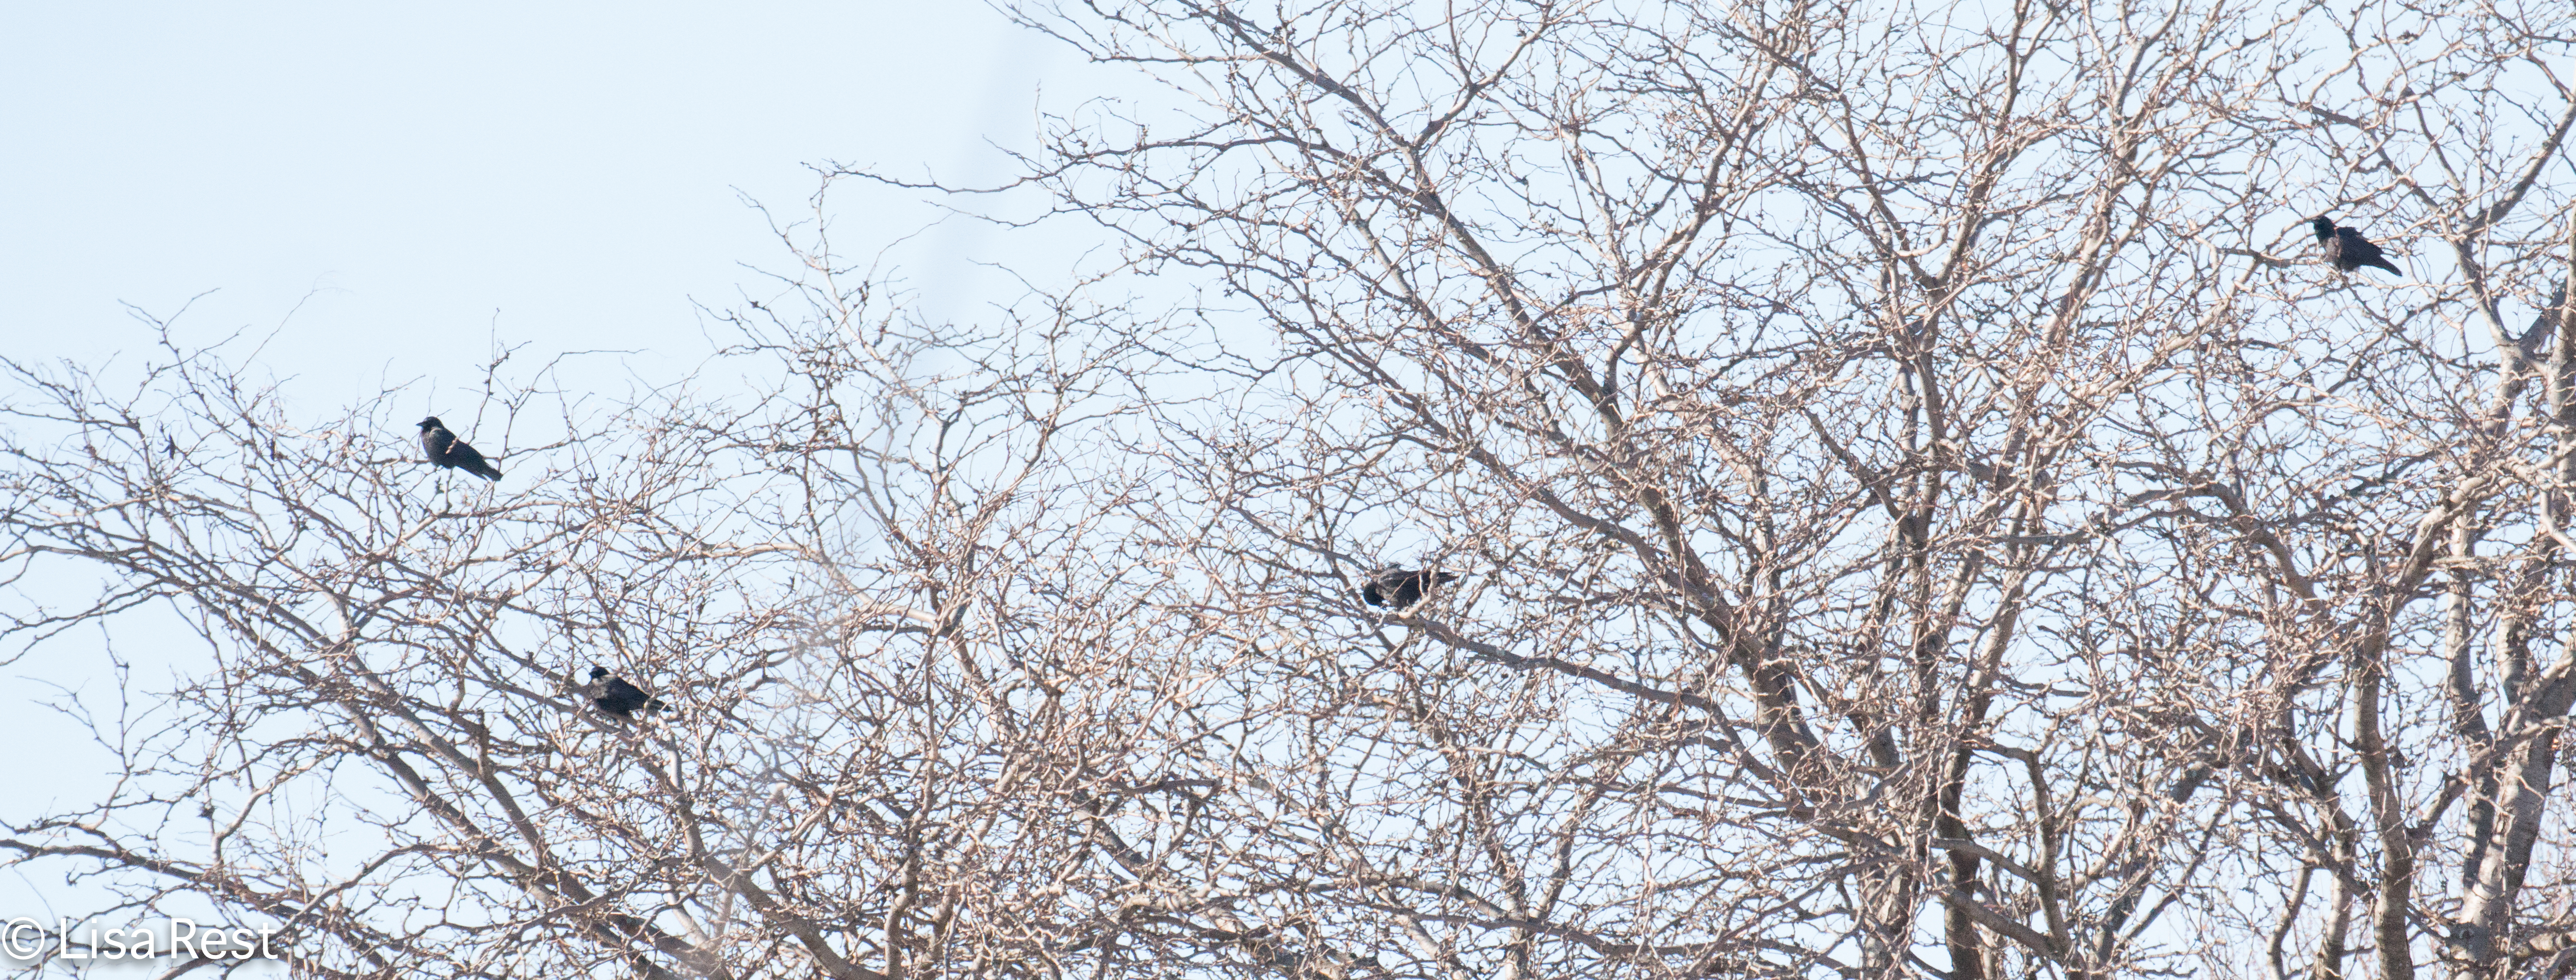 Crows 1-1-18-4012